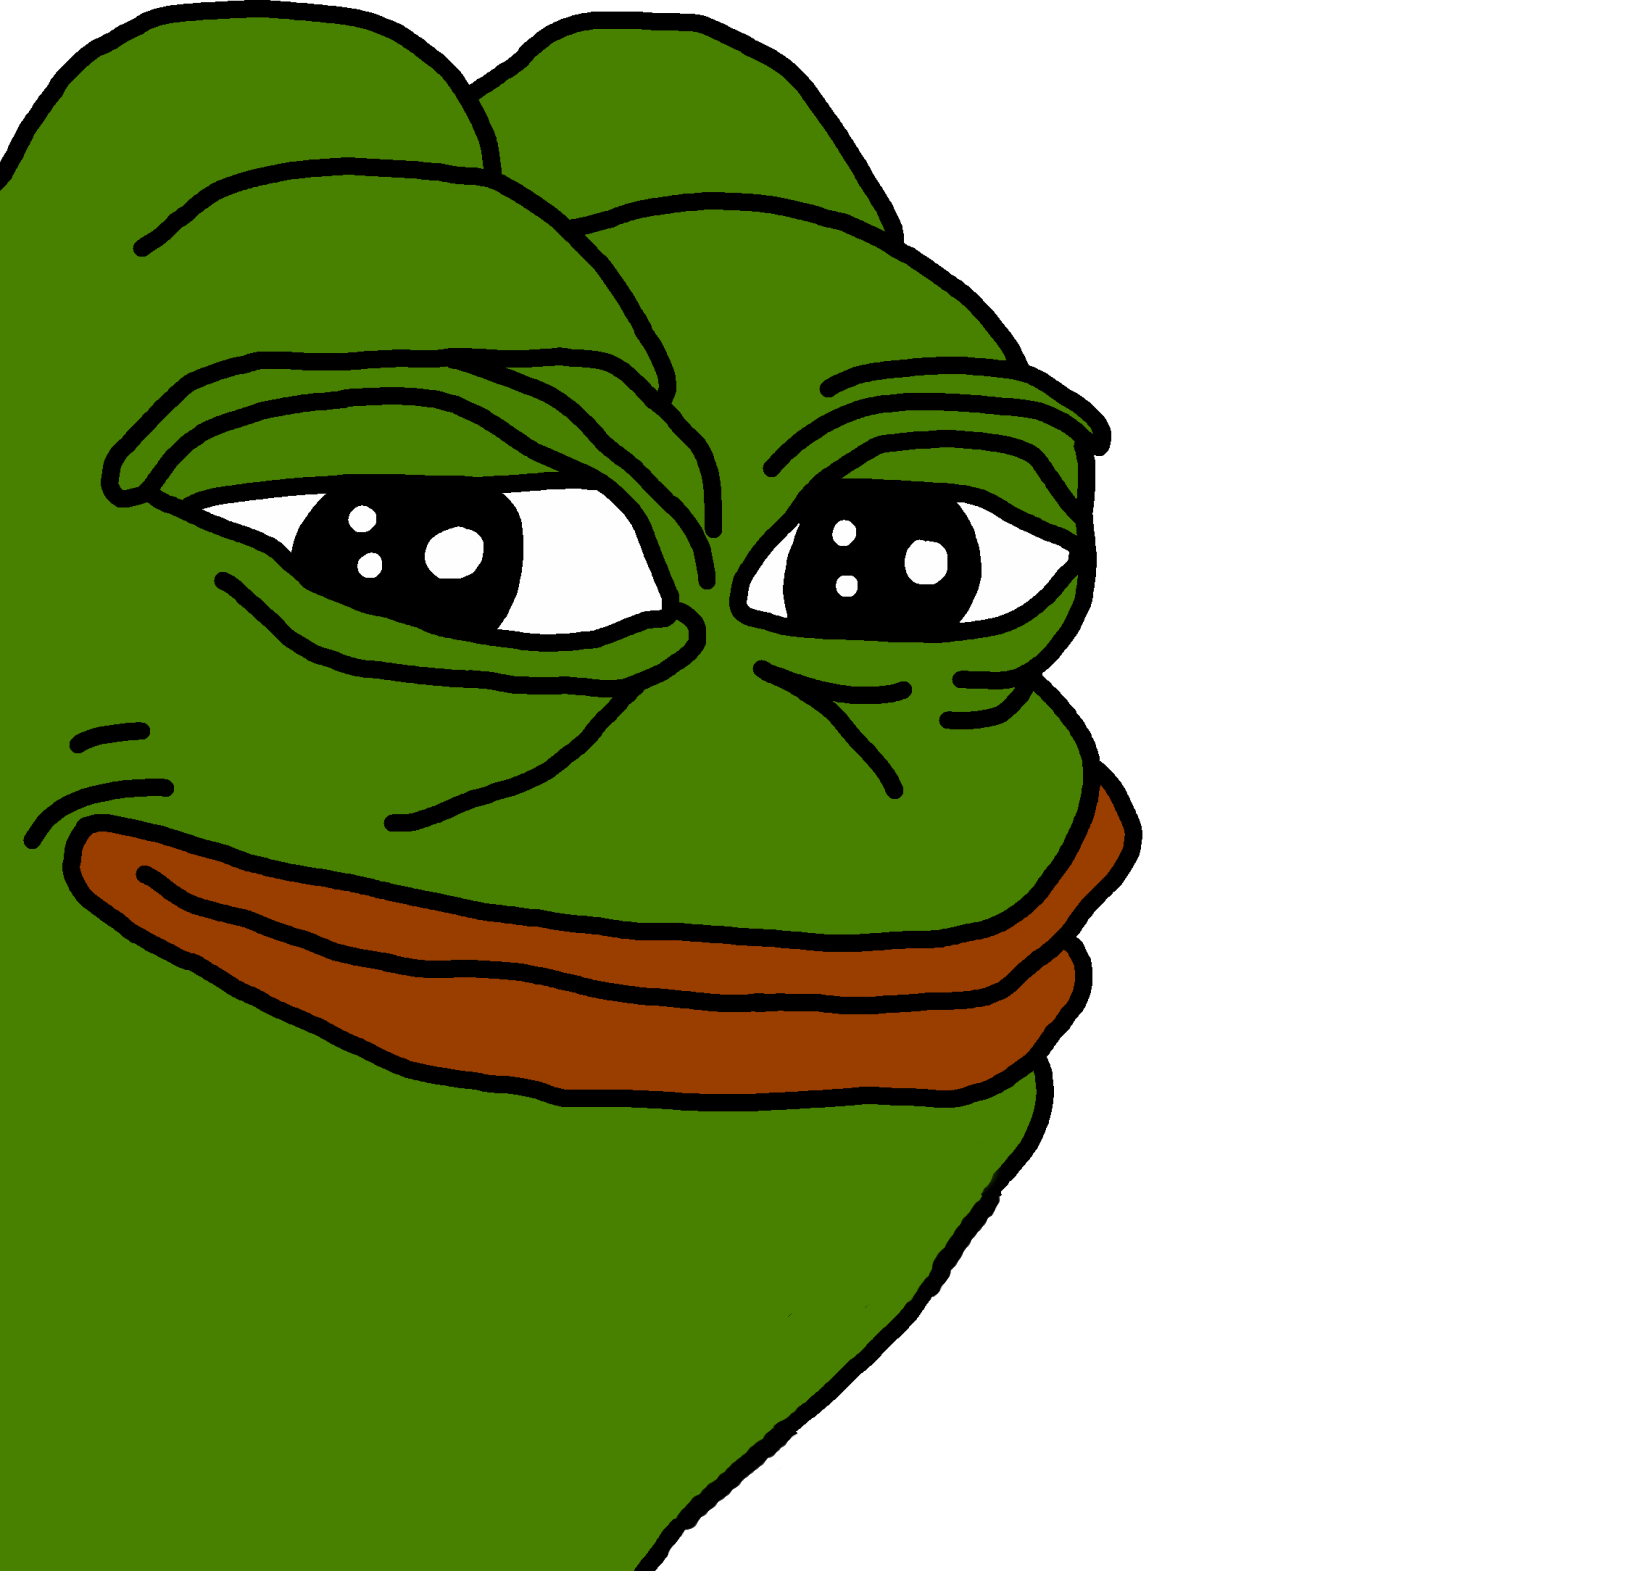 Pepe vector boi. Wsr worksafe requests thread